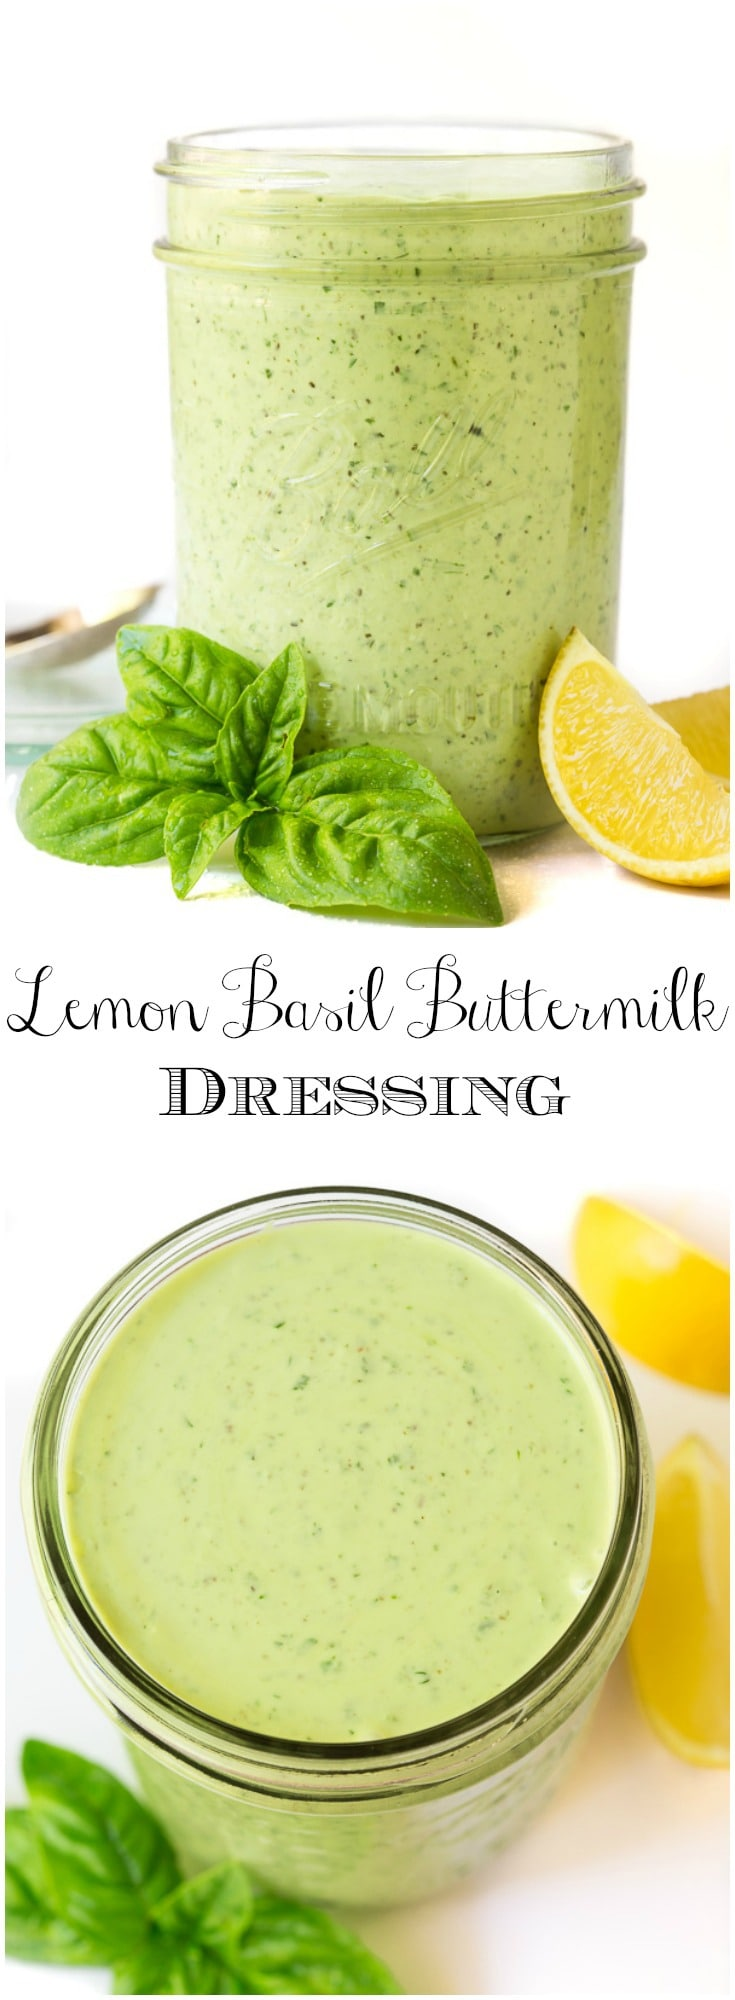 A thousand times better than boring ranch, this dressing is the perfect way to add pizzazz to salads.